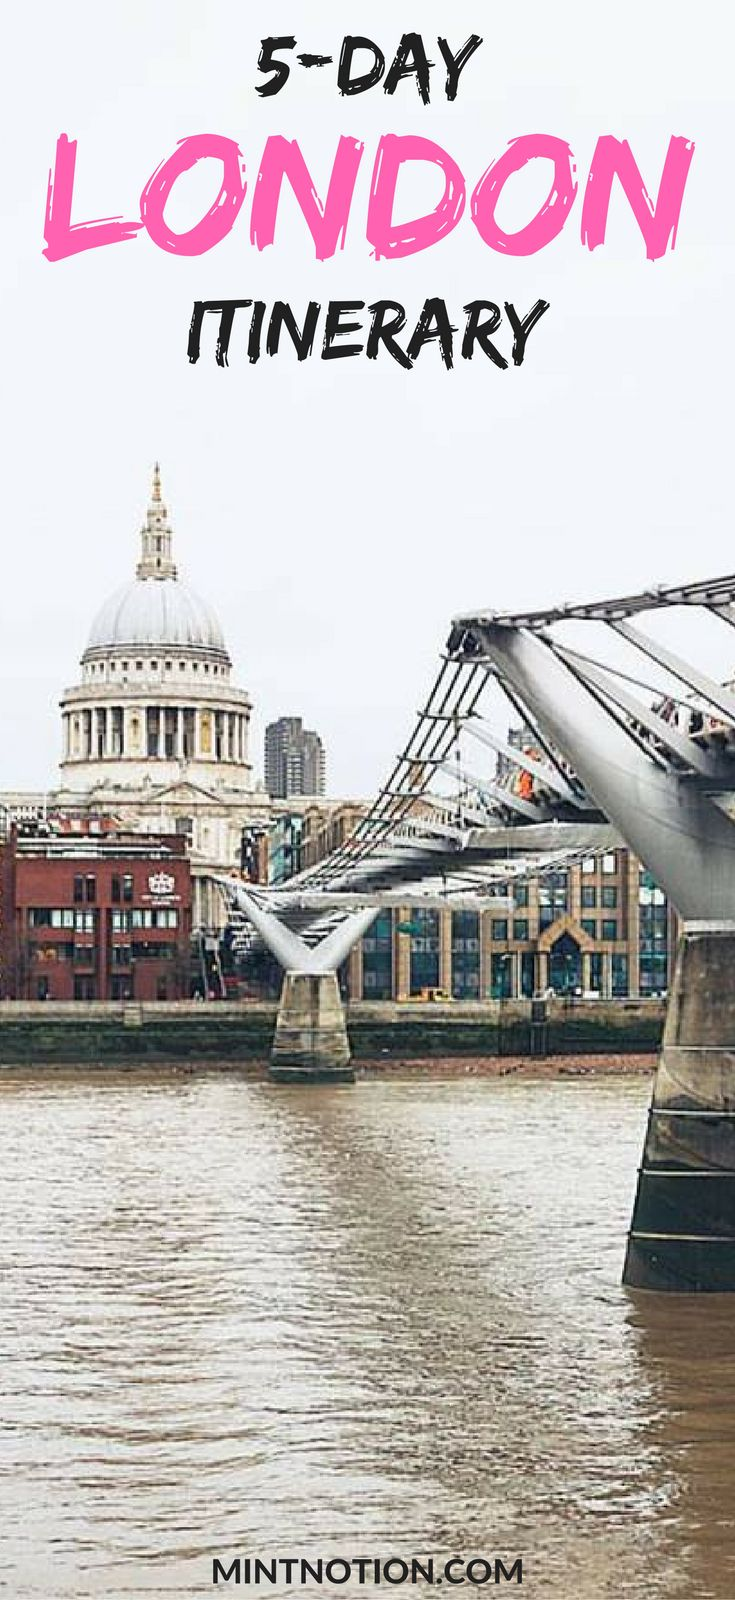 Visiting London for the first time? This 5-day itinerary is perfect for those who want to see the top London attractions on a budget. It includes the city's popular museums, afternoon tea, Big Ben, the London Eye, Buckingham Palace, and more! #londontrip #londonitinerary